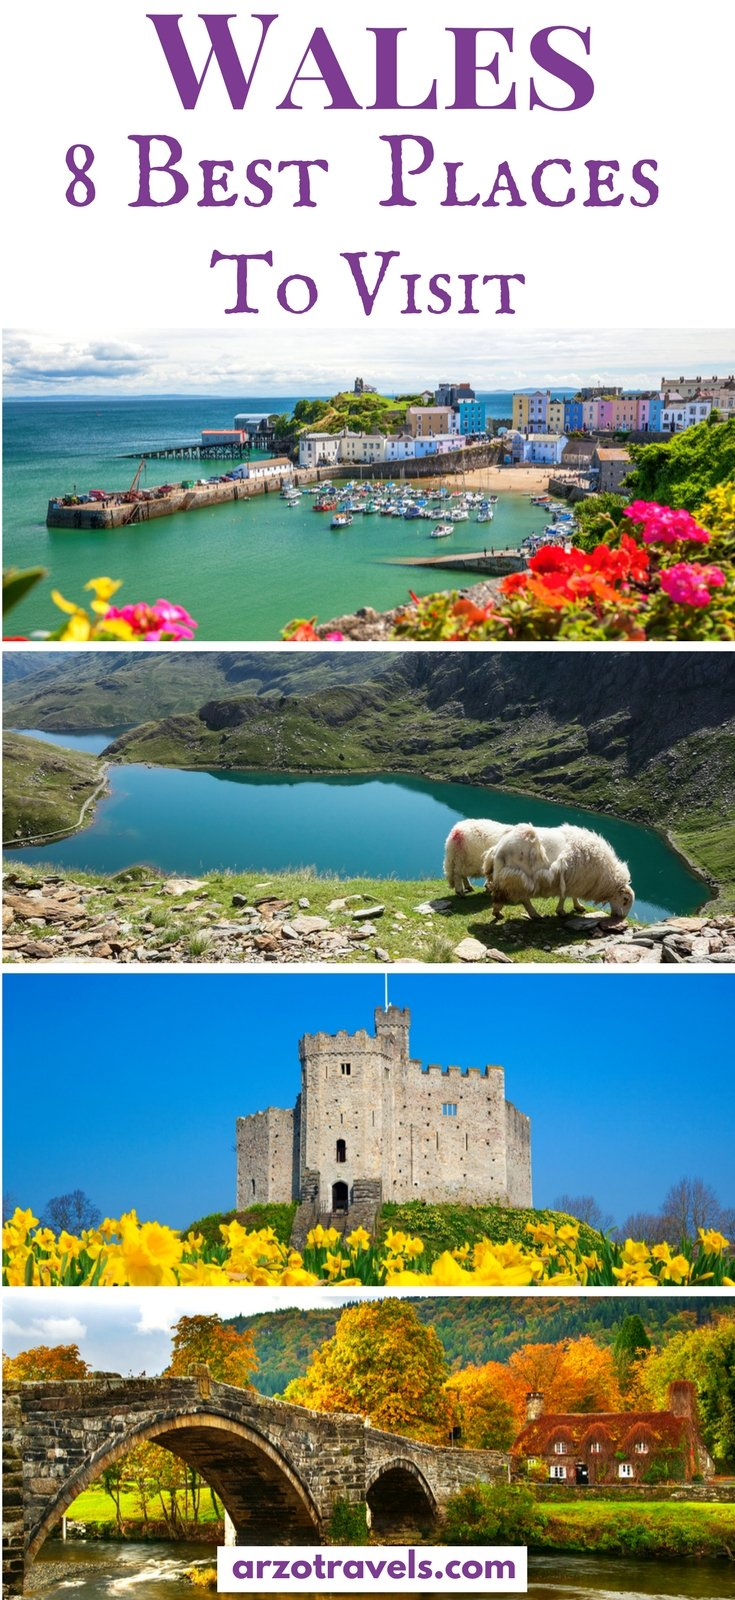 Find out about the best places to visit in Wales. These places need to be on your Wales itinerary as they are stunning and the top places to go in Wales.